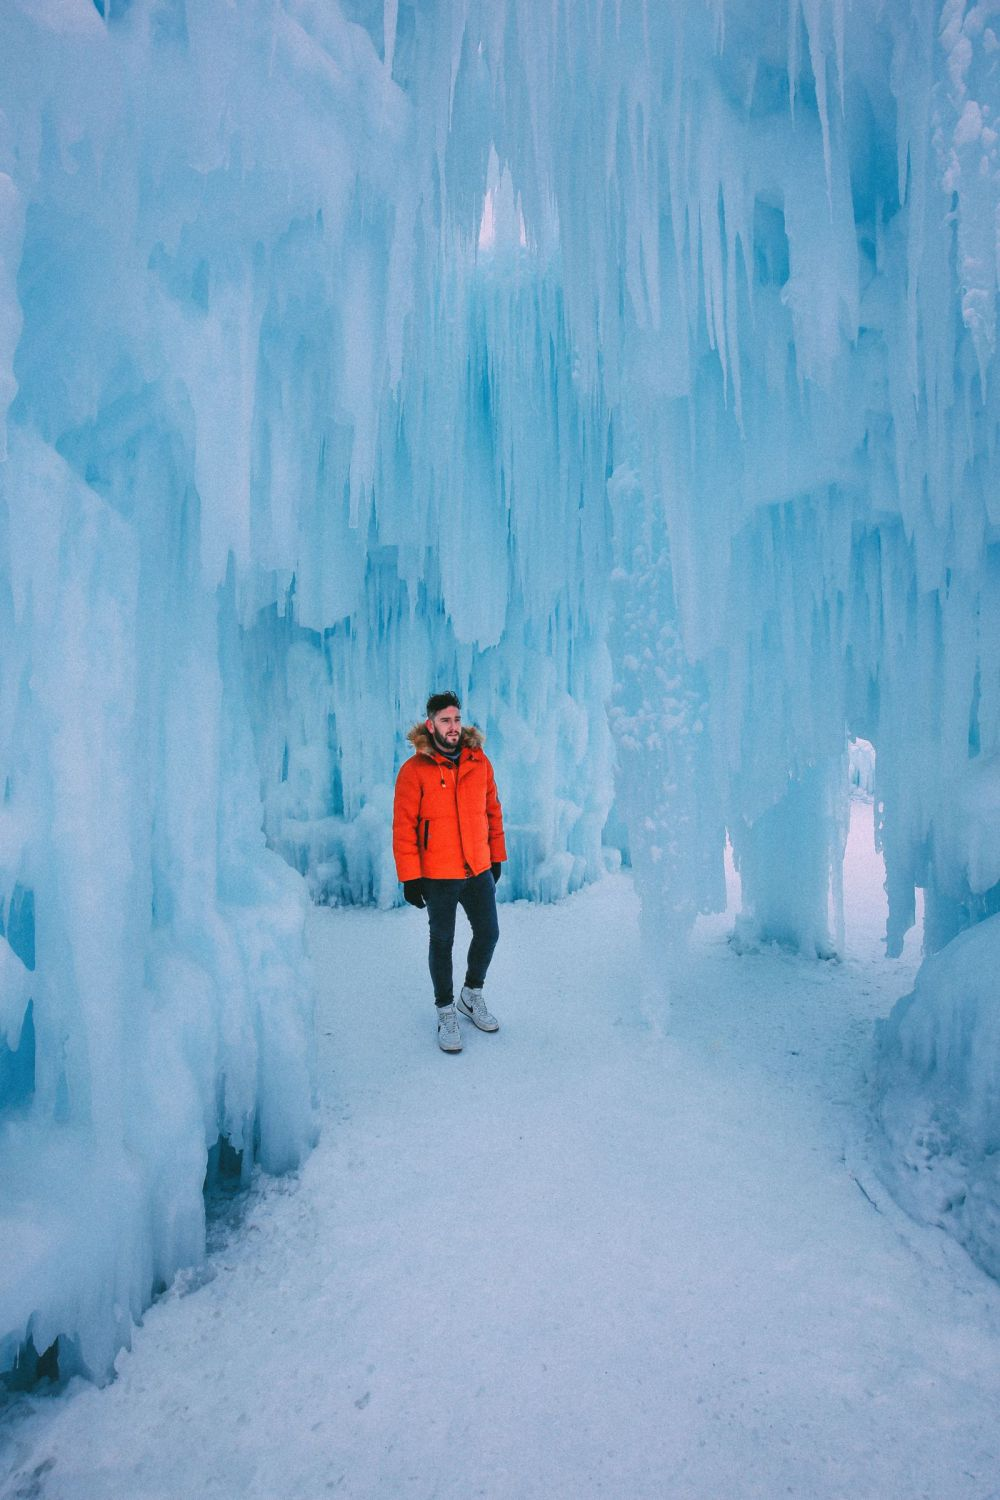 Fat Biking Across The Frozen River Valley To The Ice Castles Of Edmonton, Canada (34)